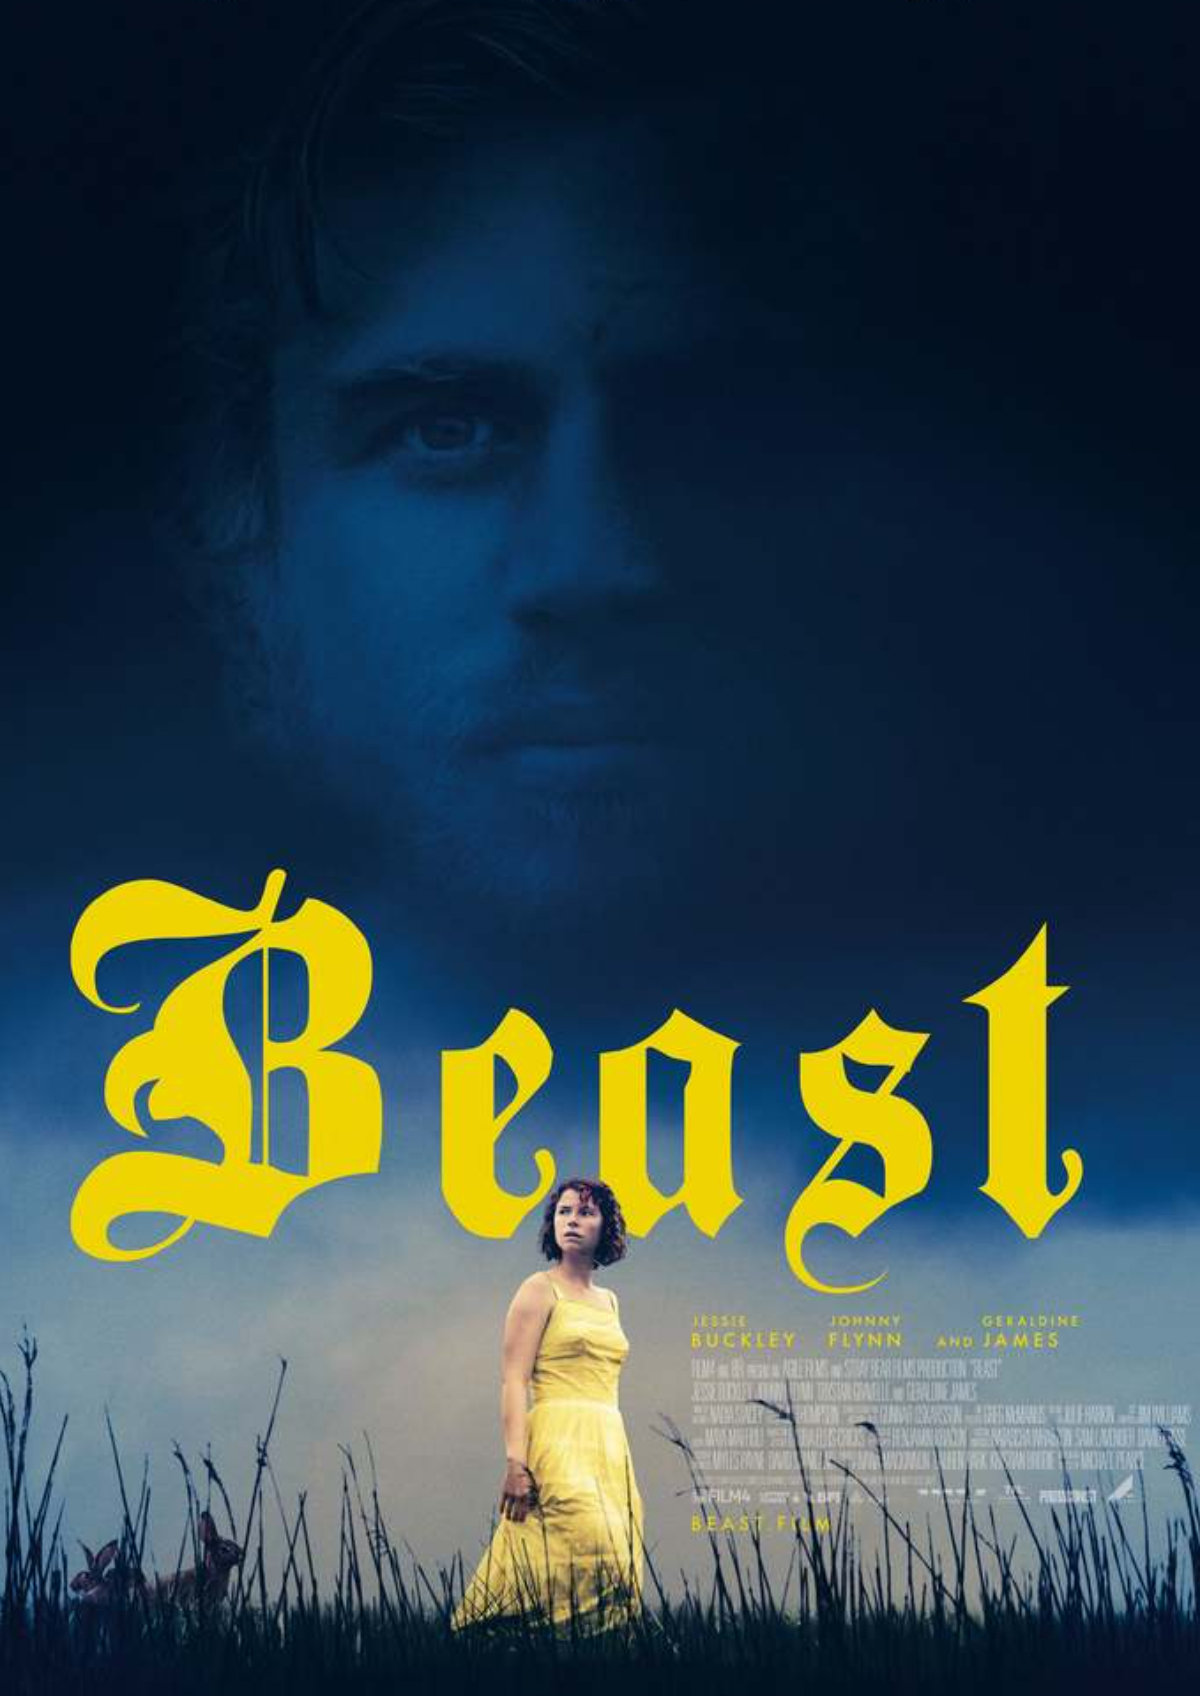 Poster for 'Beast'